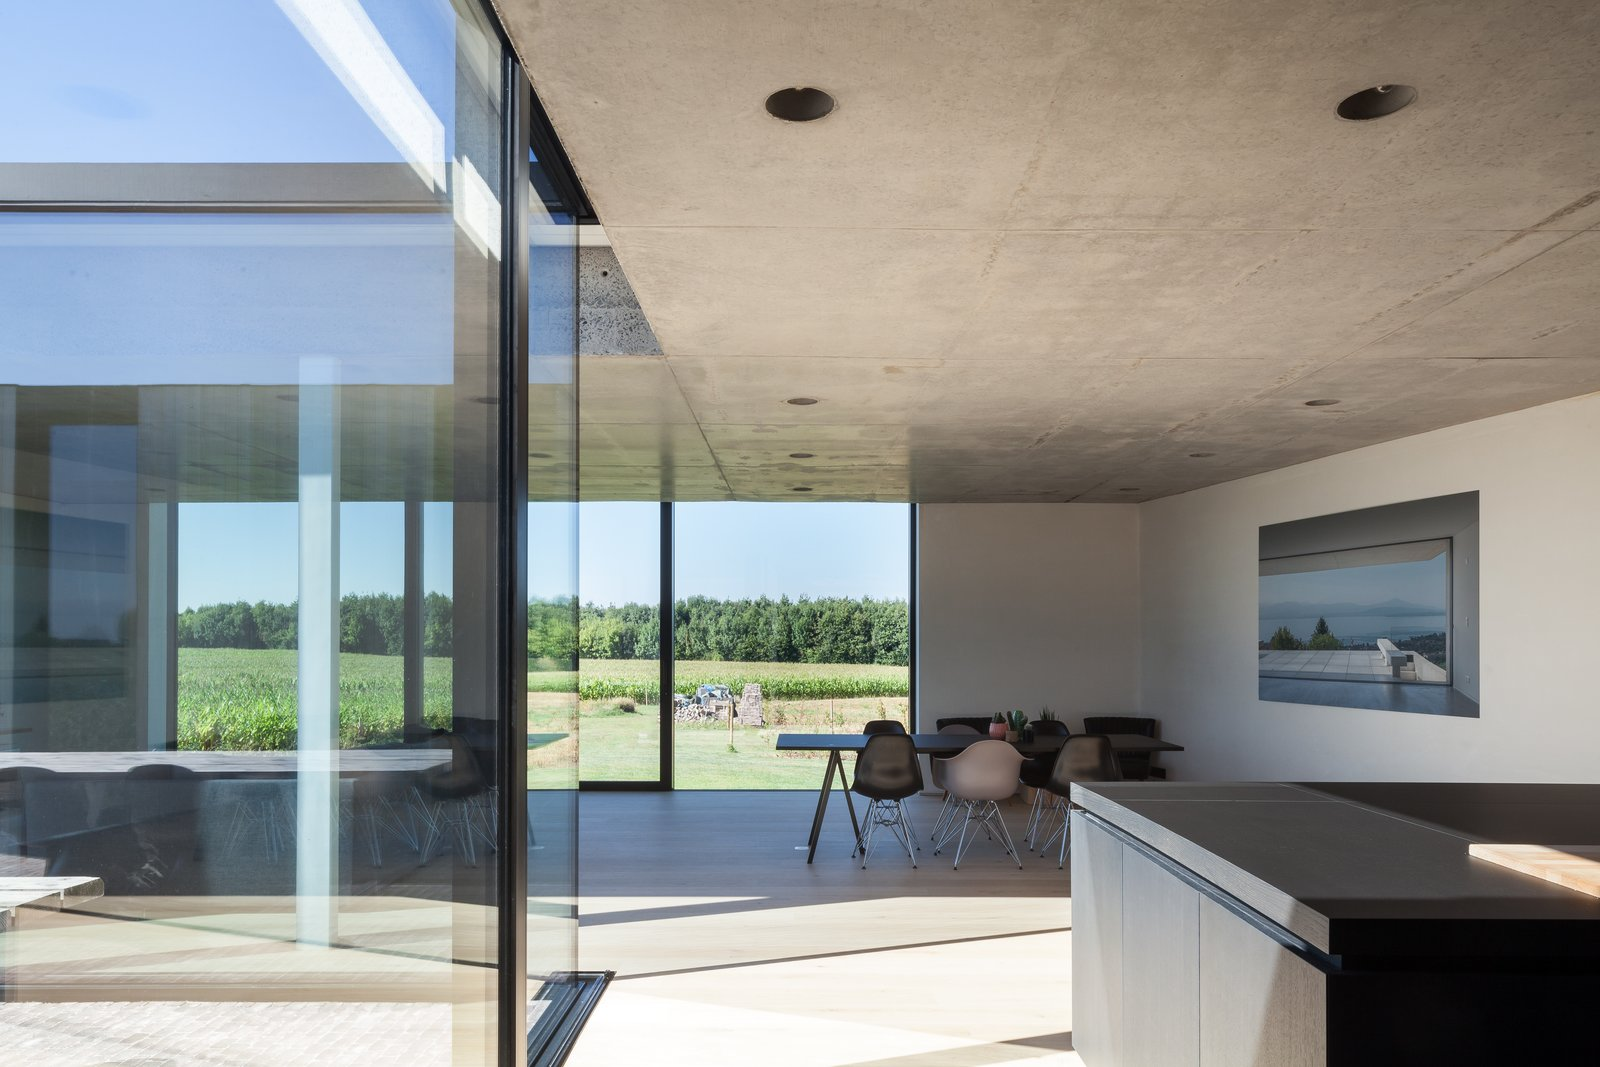 Photo 6 of 14 in Defying traditionalism: concrete bungalow inserted in a rural Belgian landscape